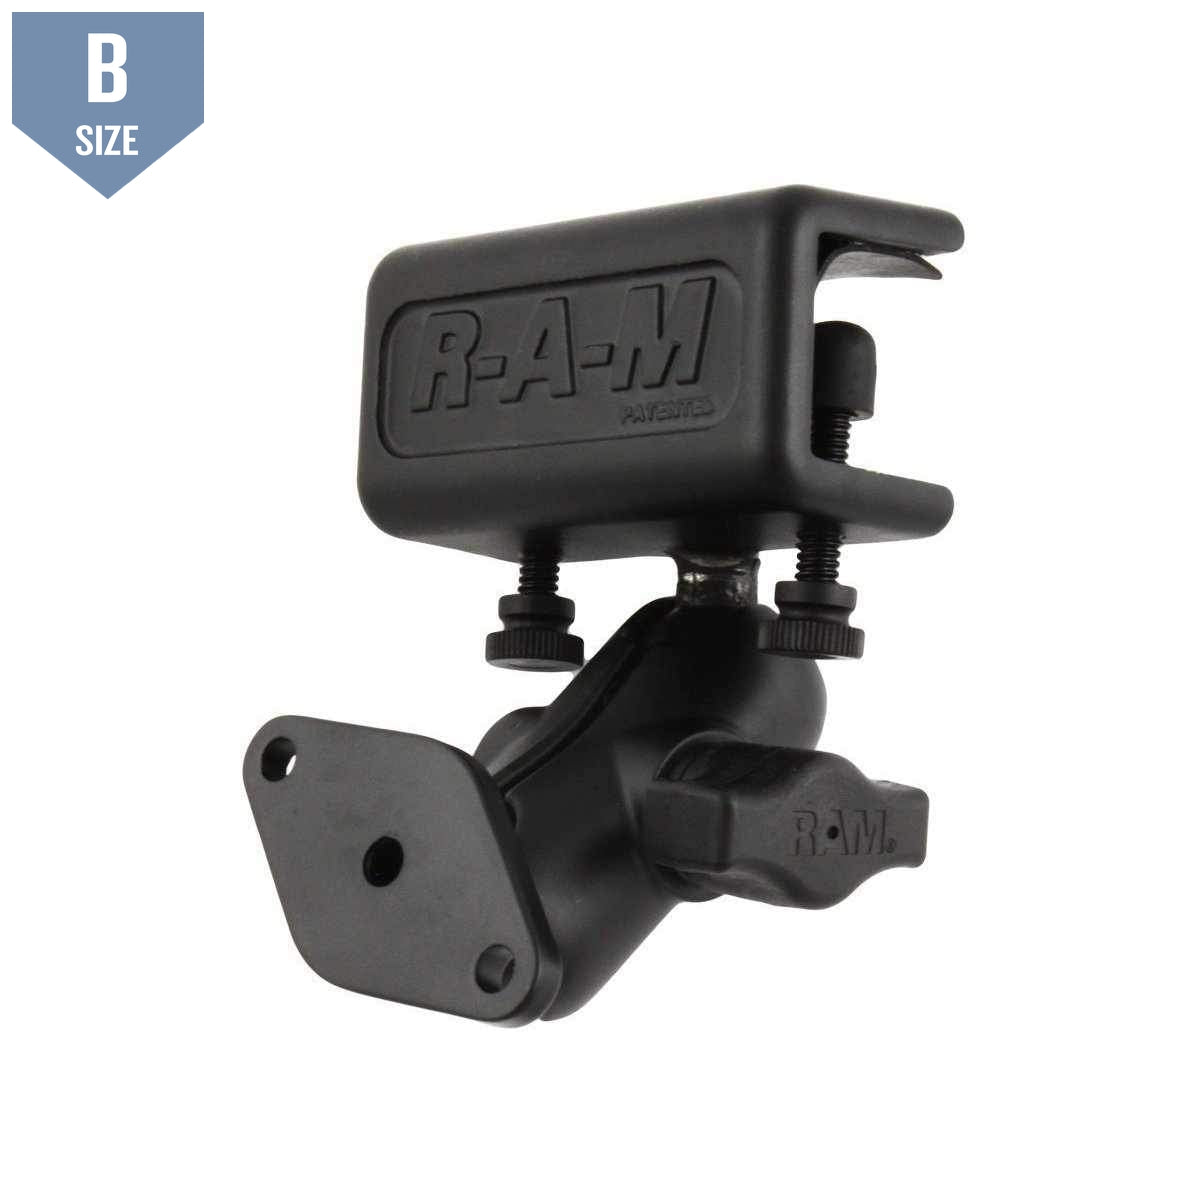 RAM Glare Shield Short Arm Mount w Diamond Base (RAM-B-177U) - Modest Mounts